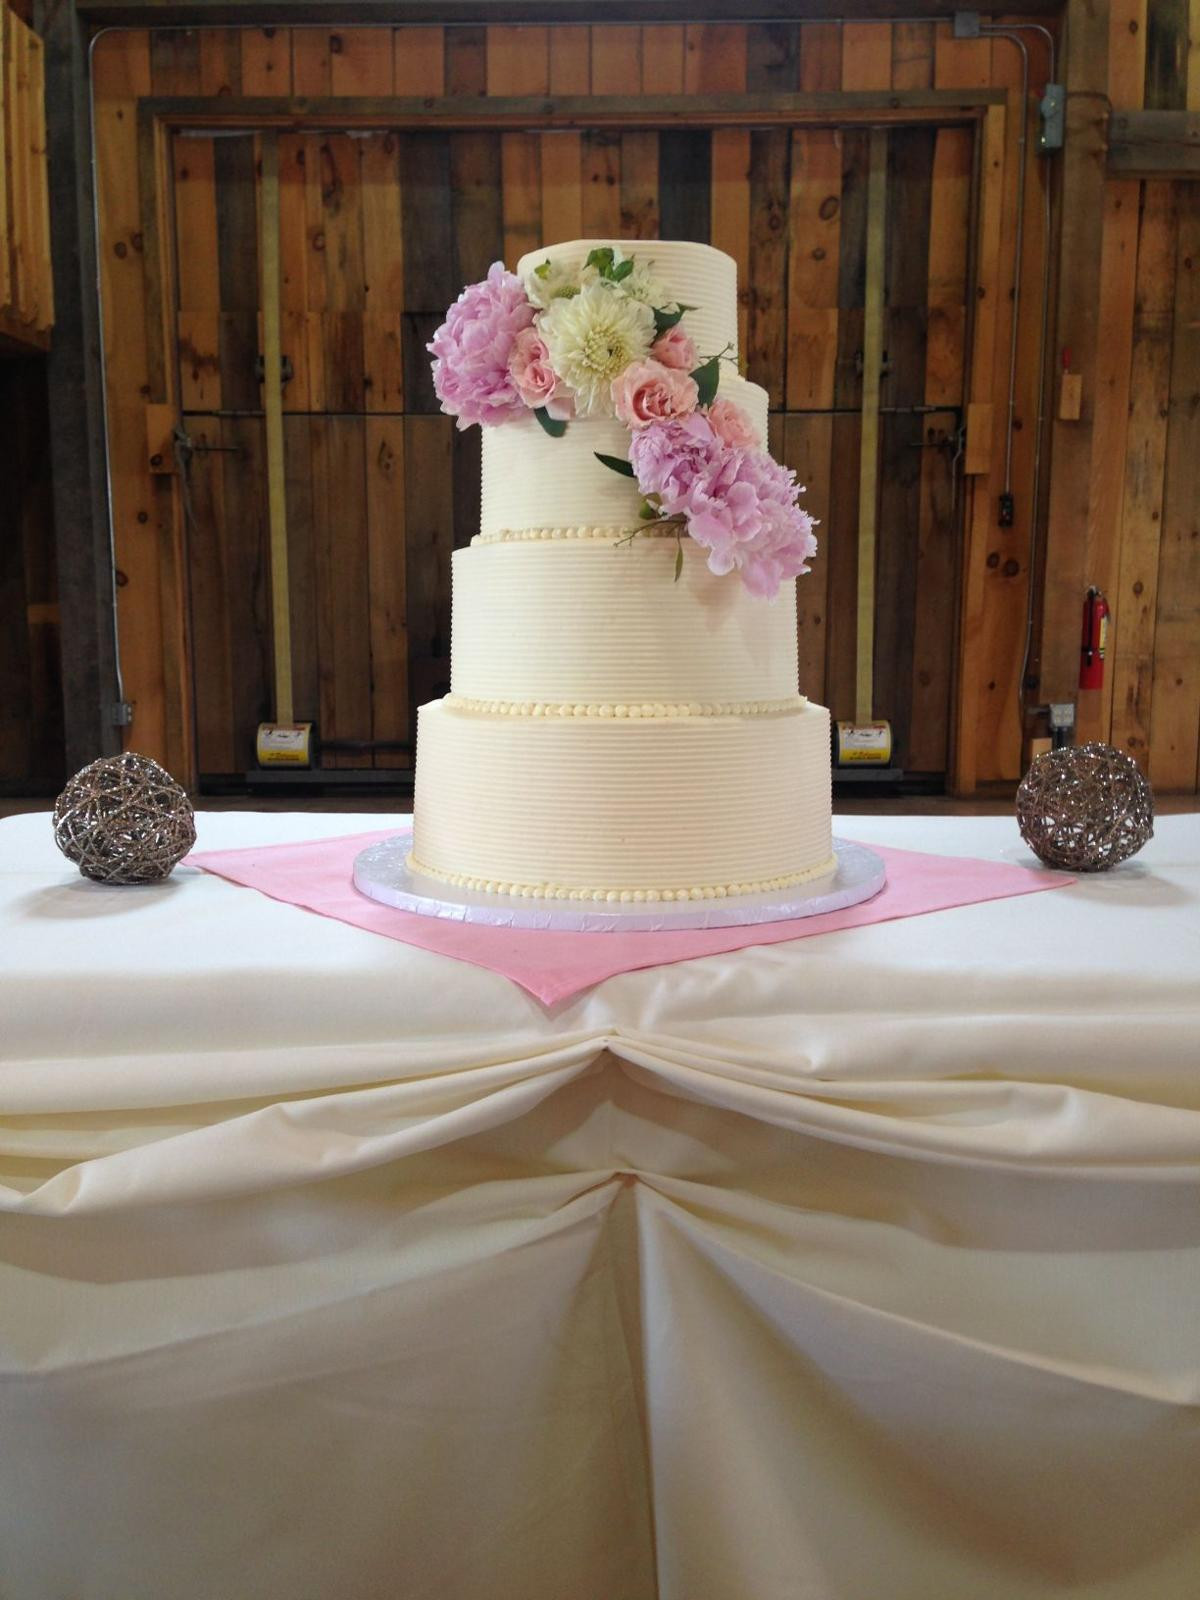 Local Wedding Cakes  Local bakeries make wedding cakes into works of art